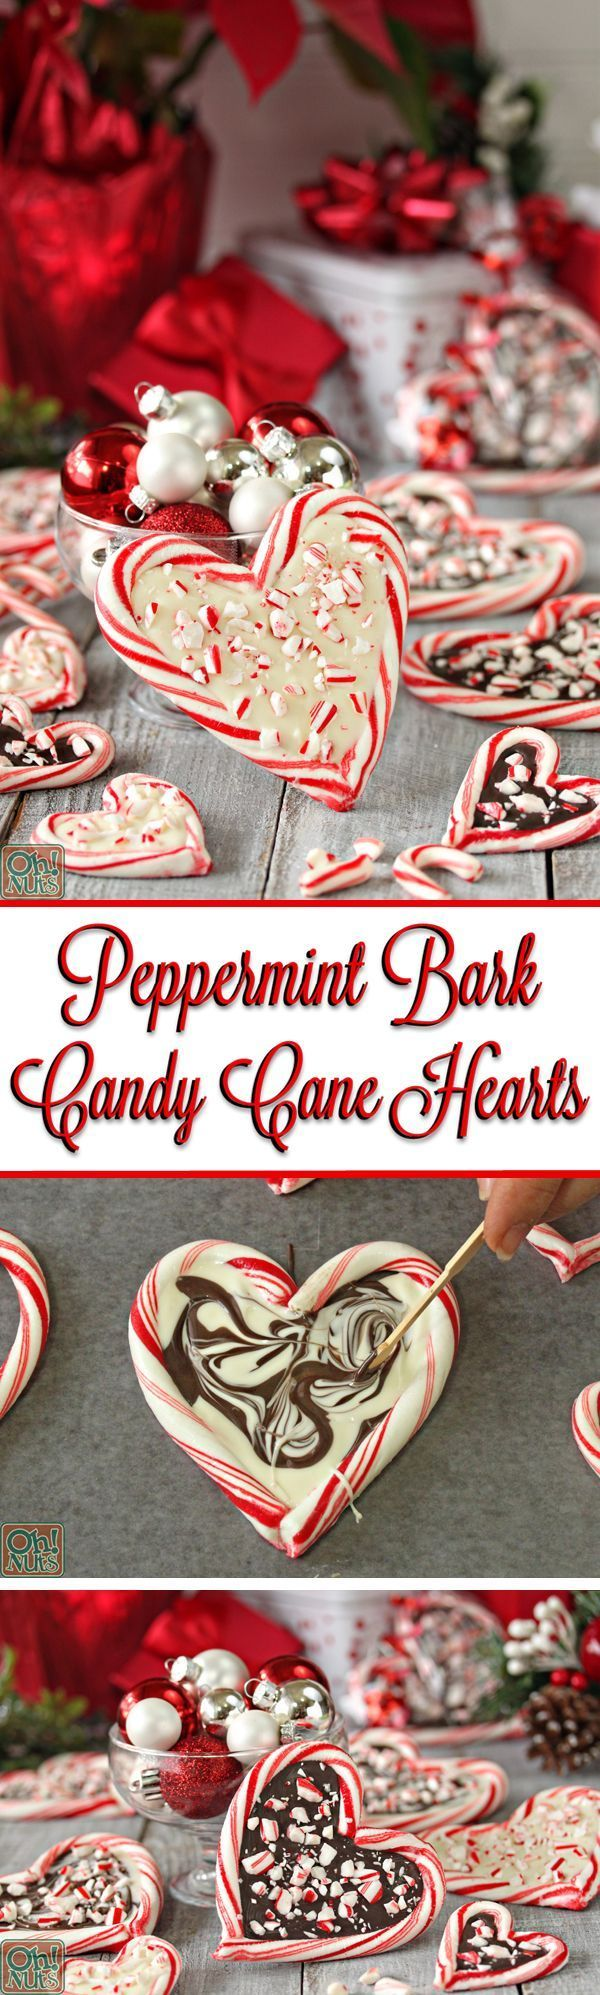 the bag shop online Peppermint Bark Candy Cane Hearts   Christmas candy that  39 s easy to make  looks beautiful  tastes delicious  and is perfect for gift giving